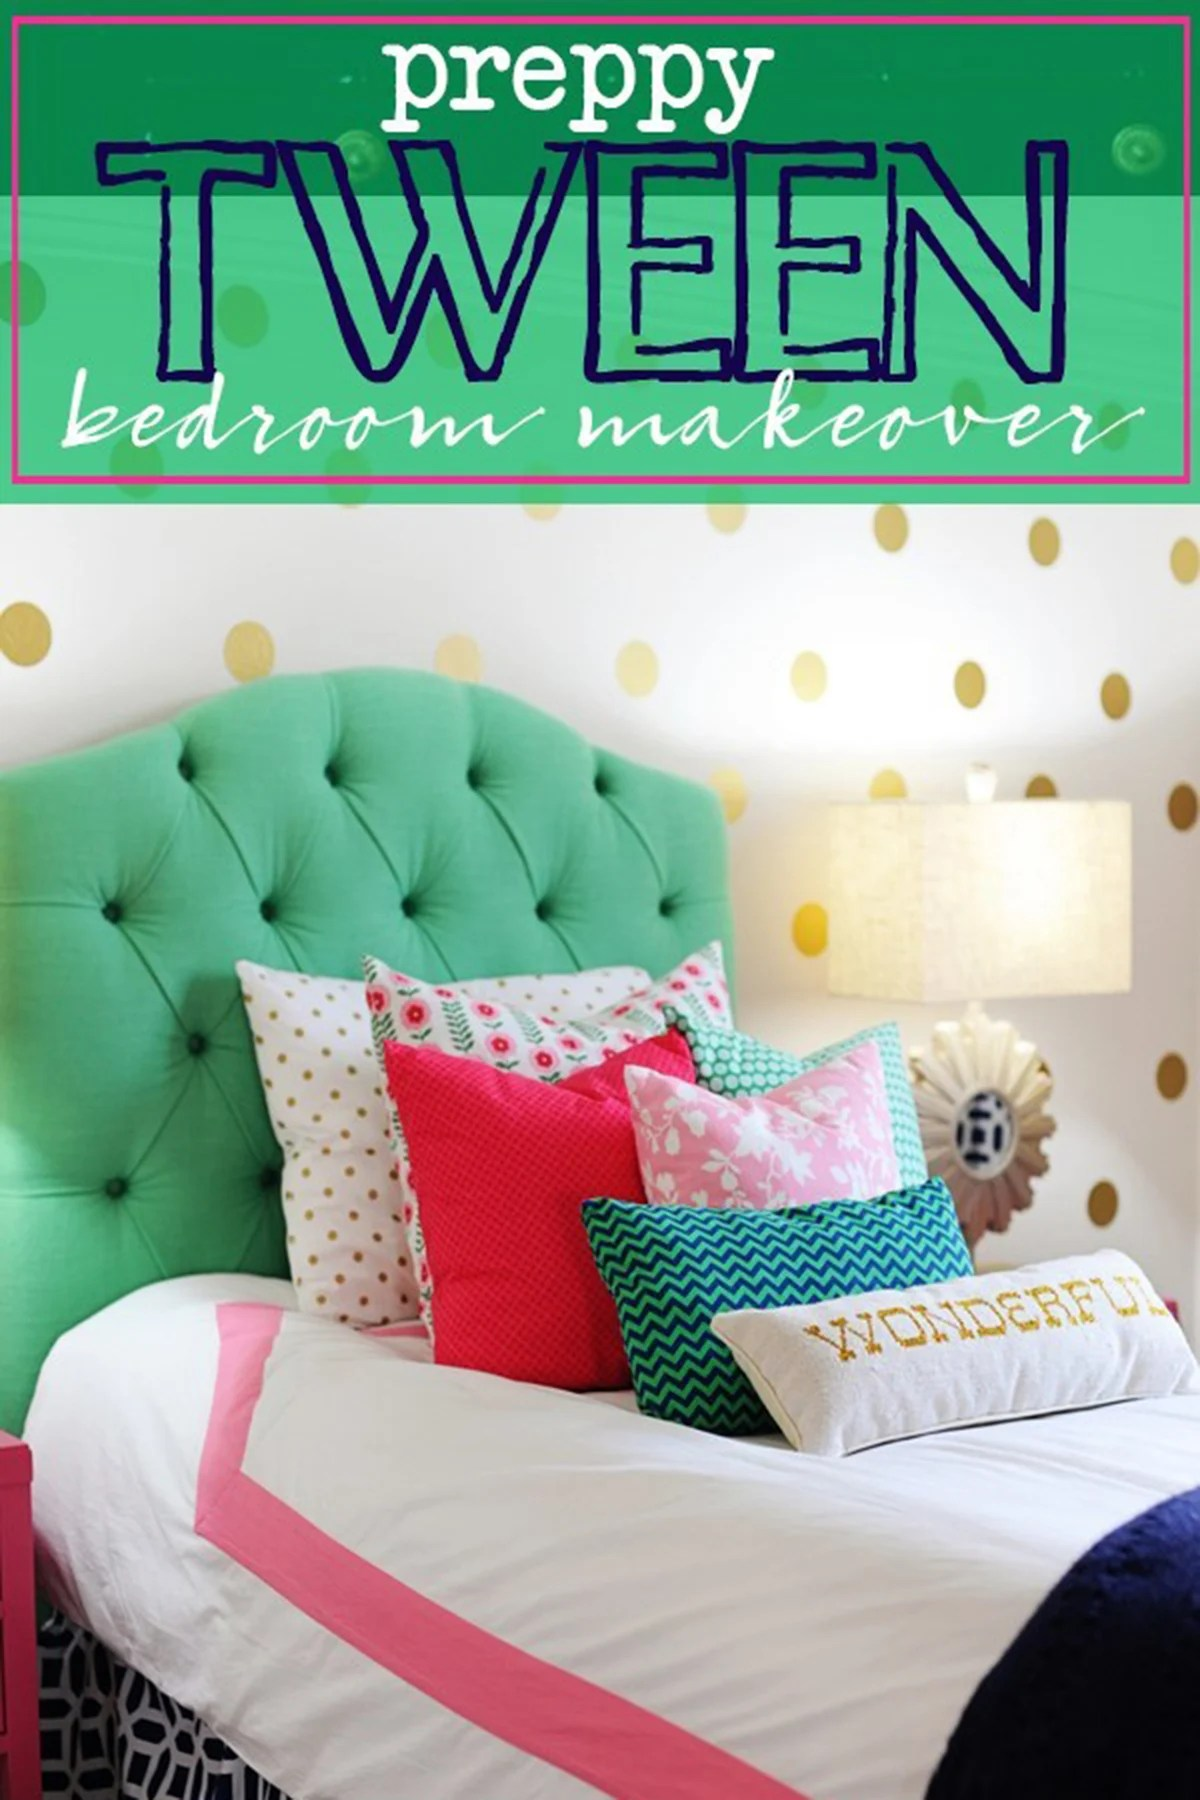 Tween Girl Bedroom Preppy Design / Decor Ideas (Pink, Navy, Green)